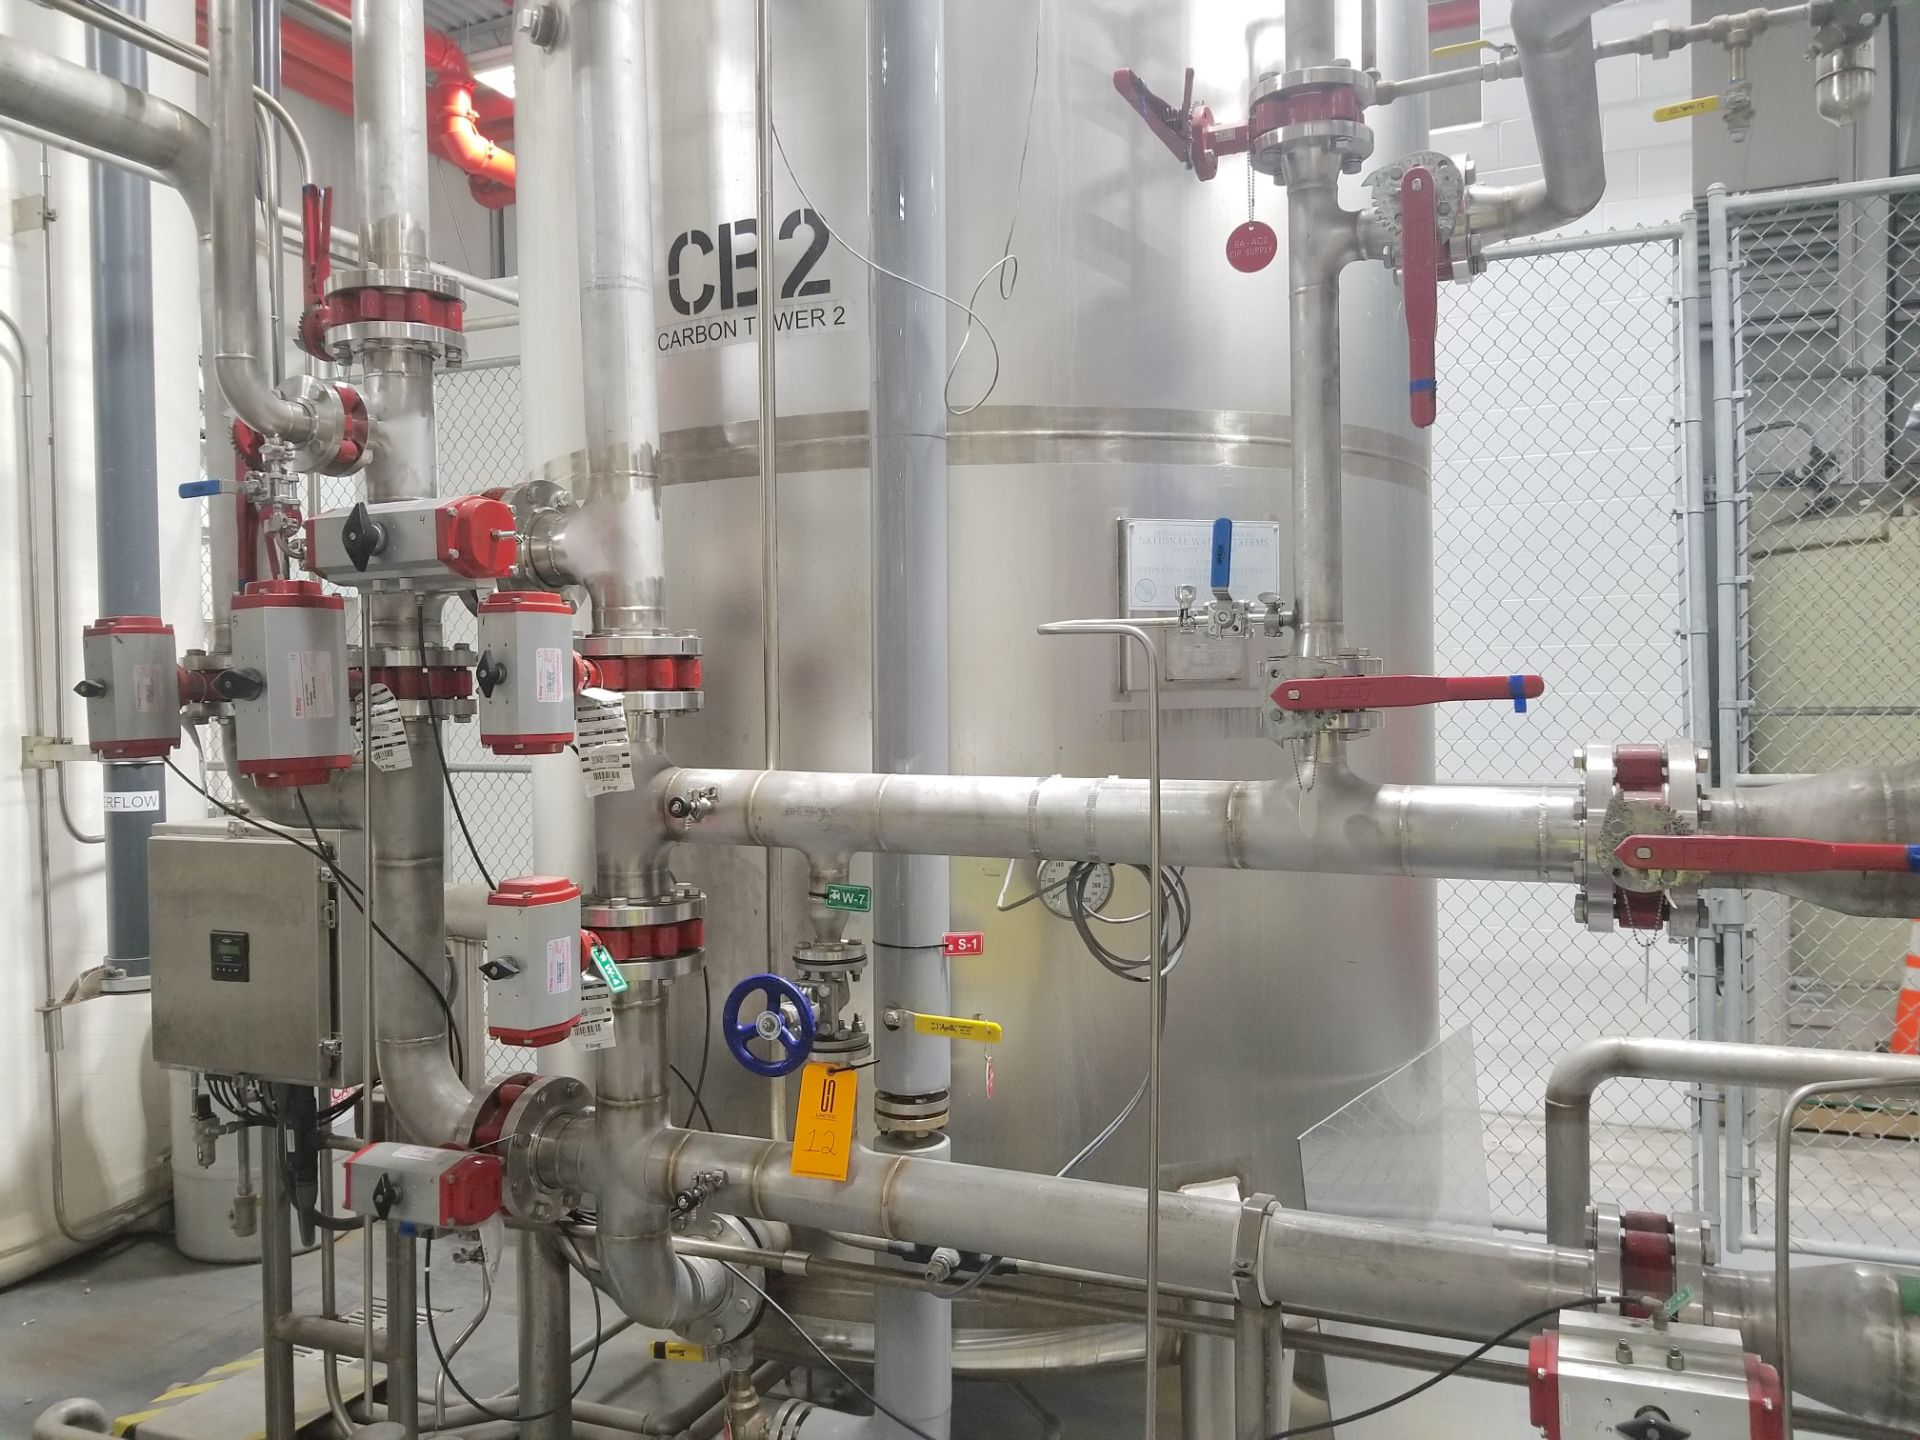 Stainless Steel Carbon Filter Tank - Image 2 of 7